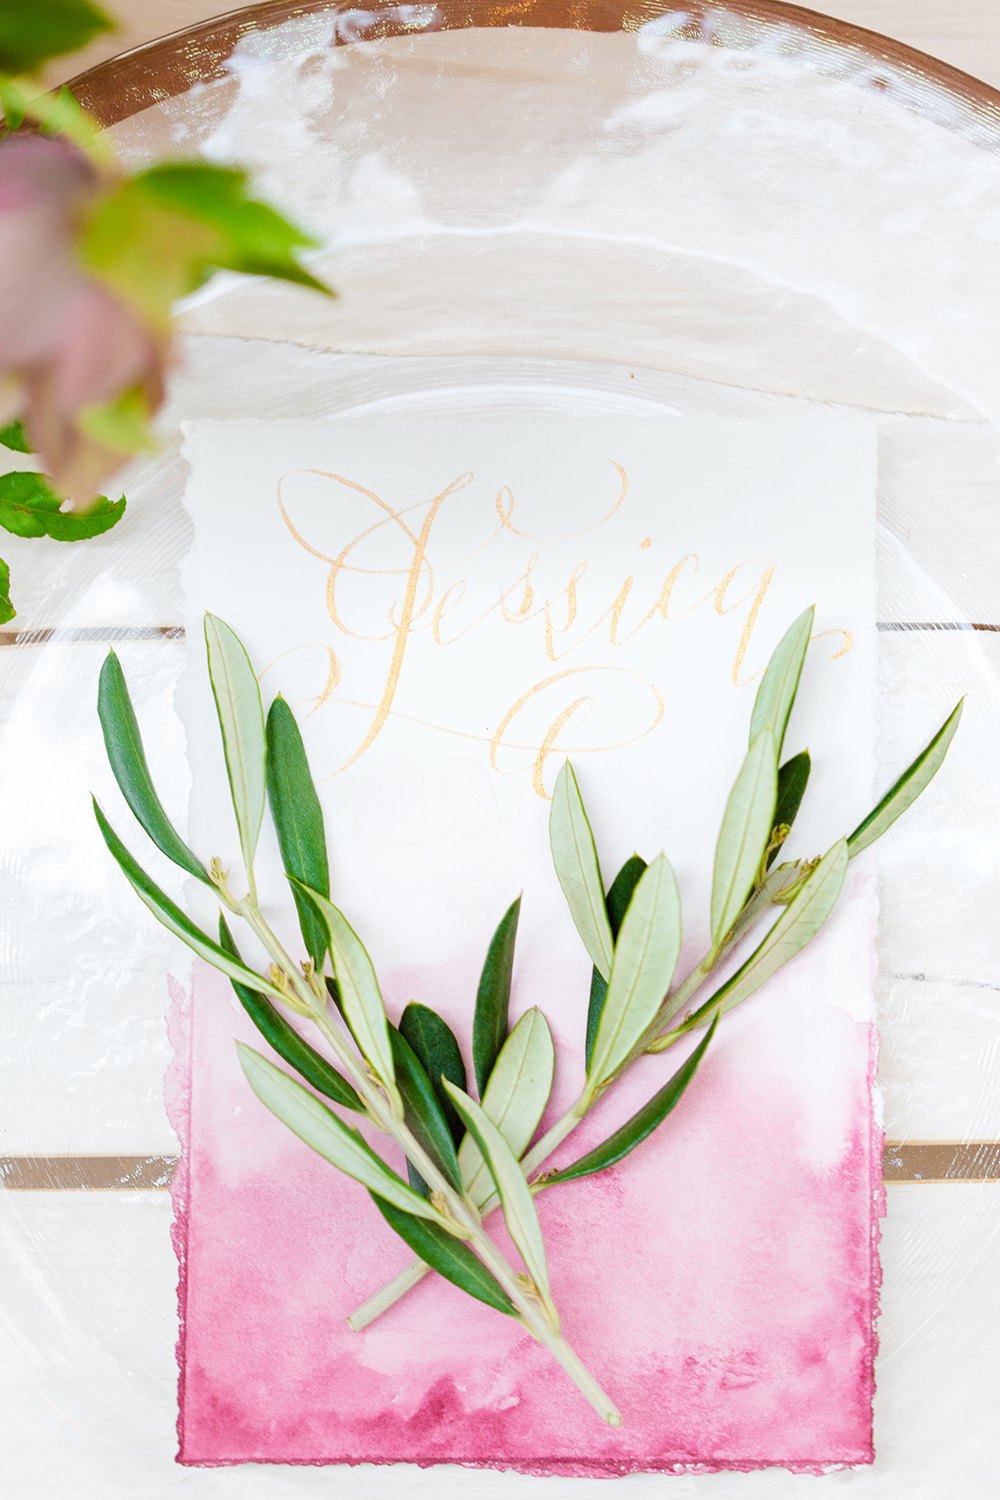 romantic place settings - photo by Lauren Lee Photography http://ruffledblog.com/modern-grecian-inspired-wedding-ideas